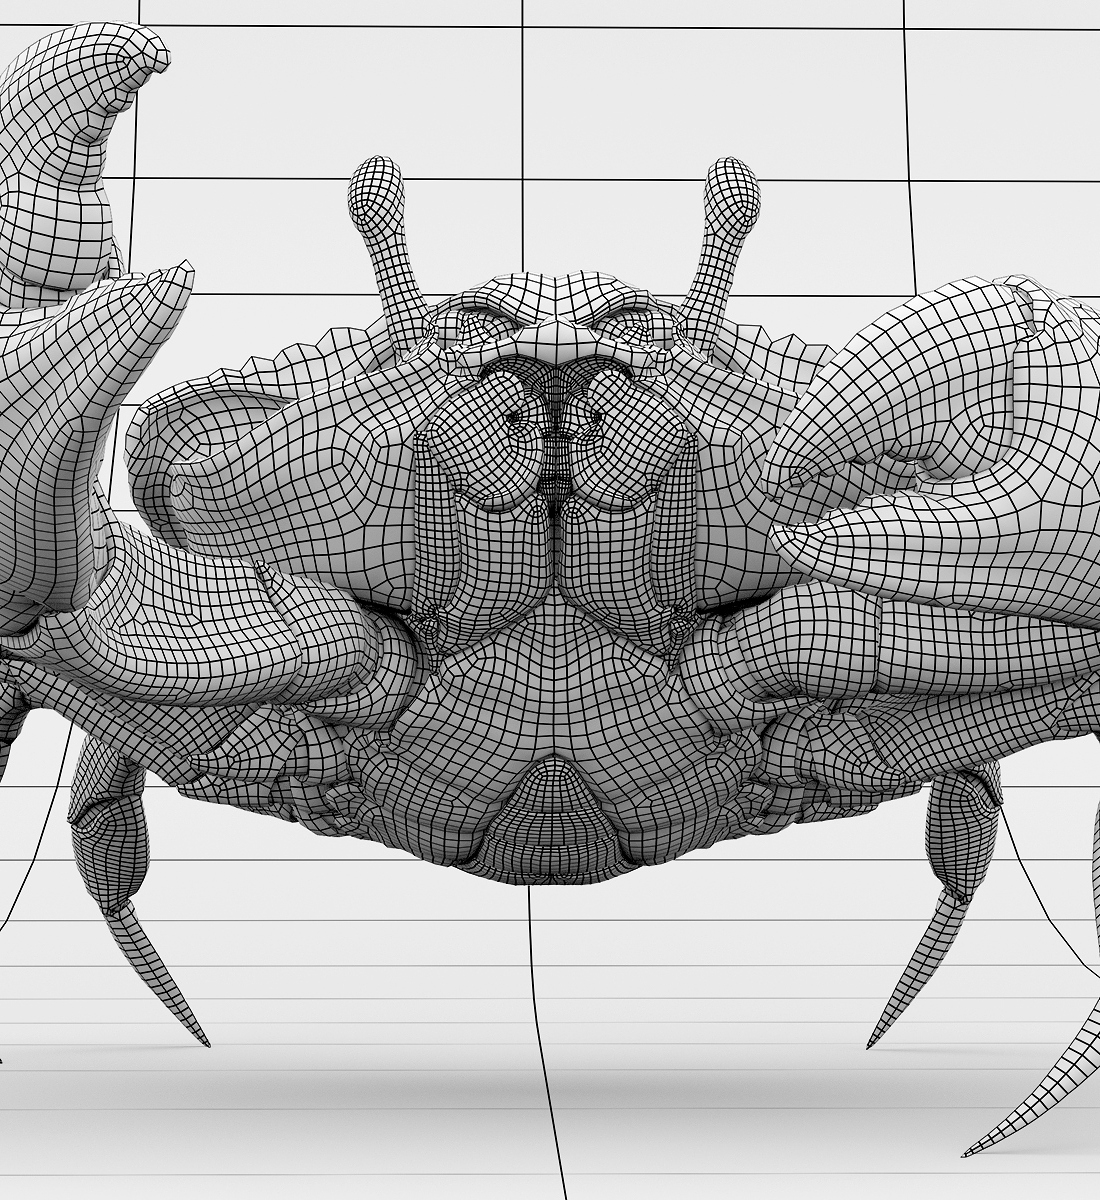 Crab_Shot_02_WireFrame.jpg